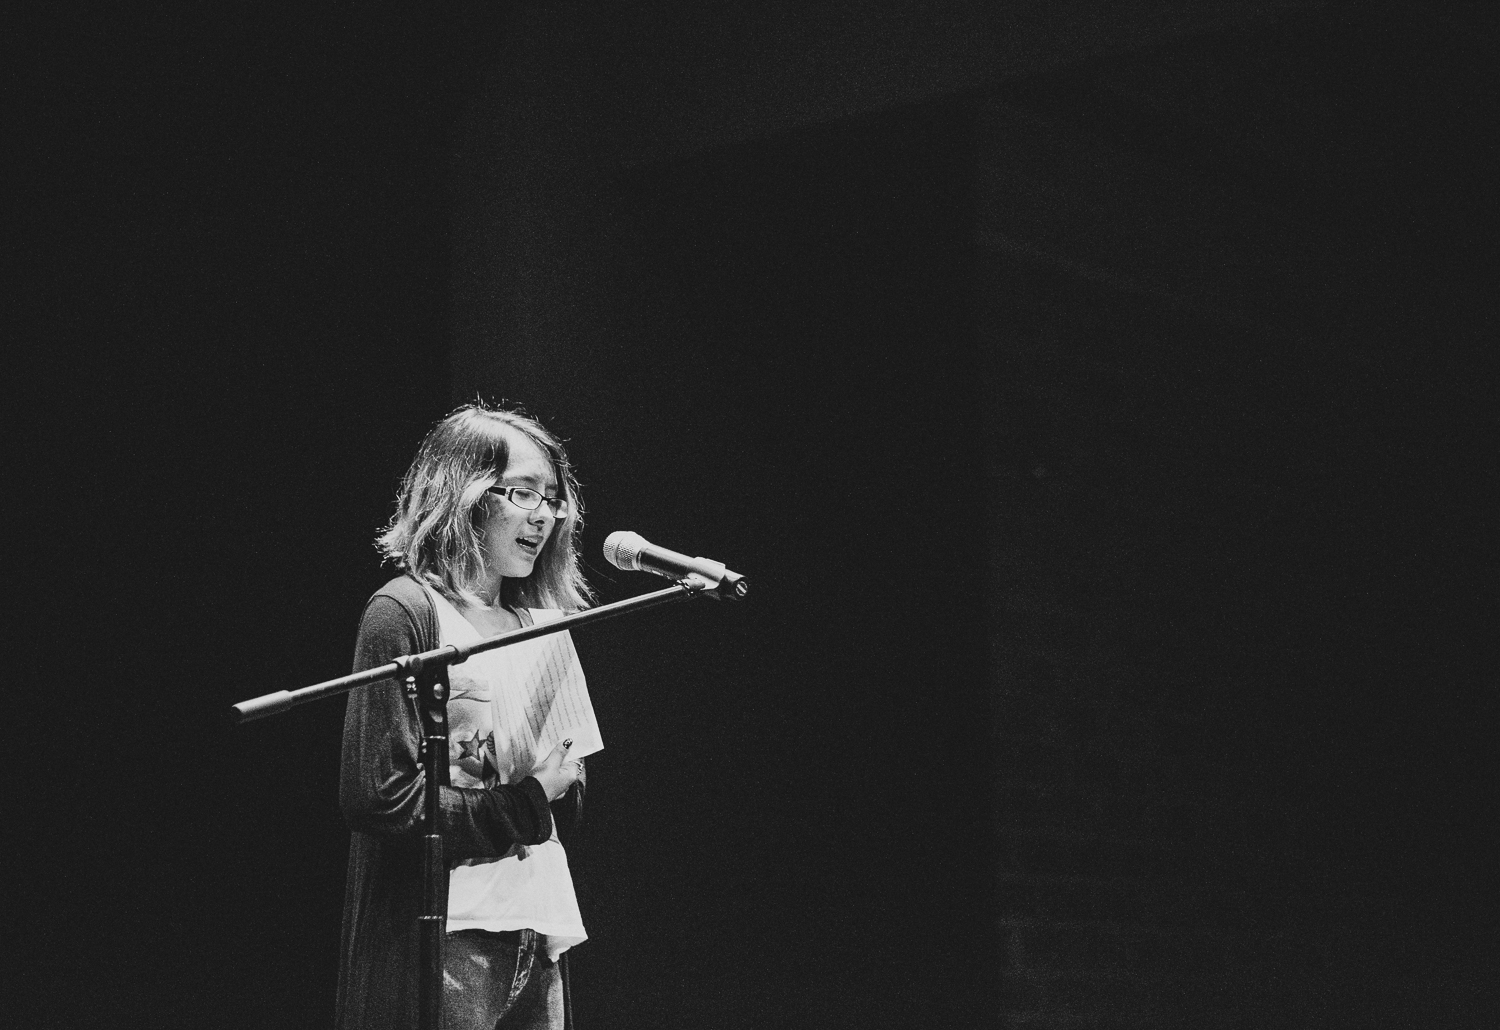 Marfa student Crystal Catano performs a monologue during the Marfa Live Arts Winter Showcase in December 2016. Photo credit: Jennifer Boomer